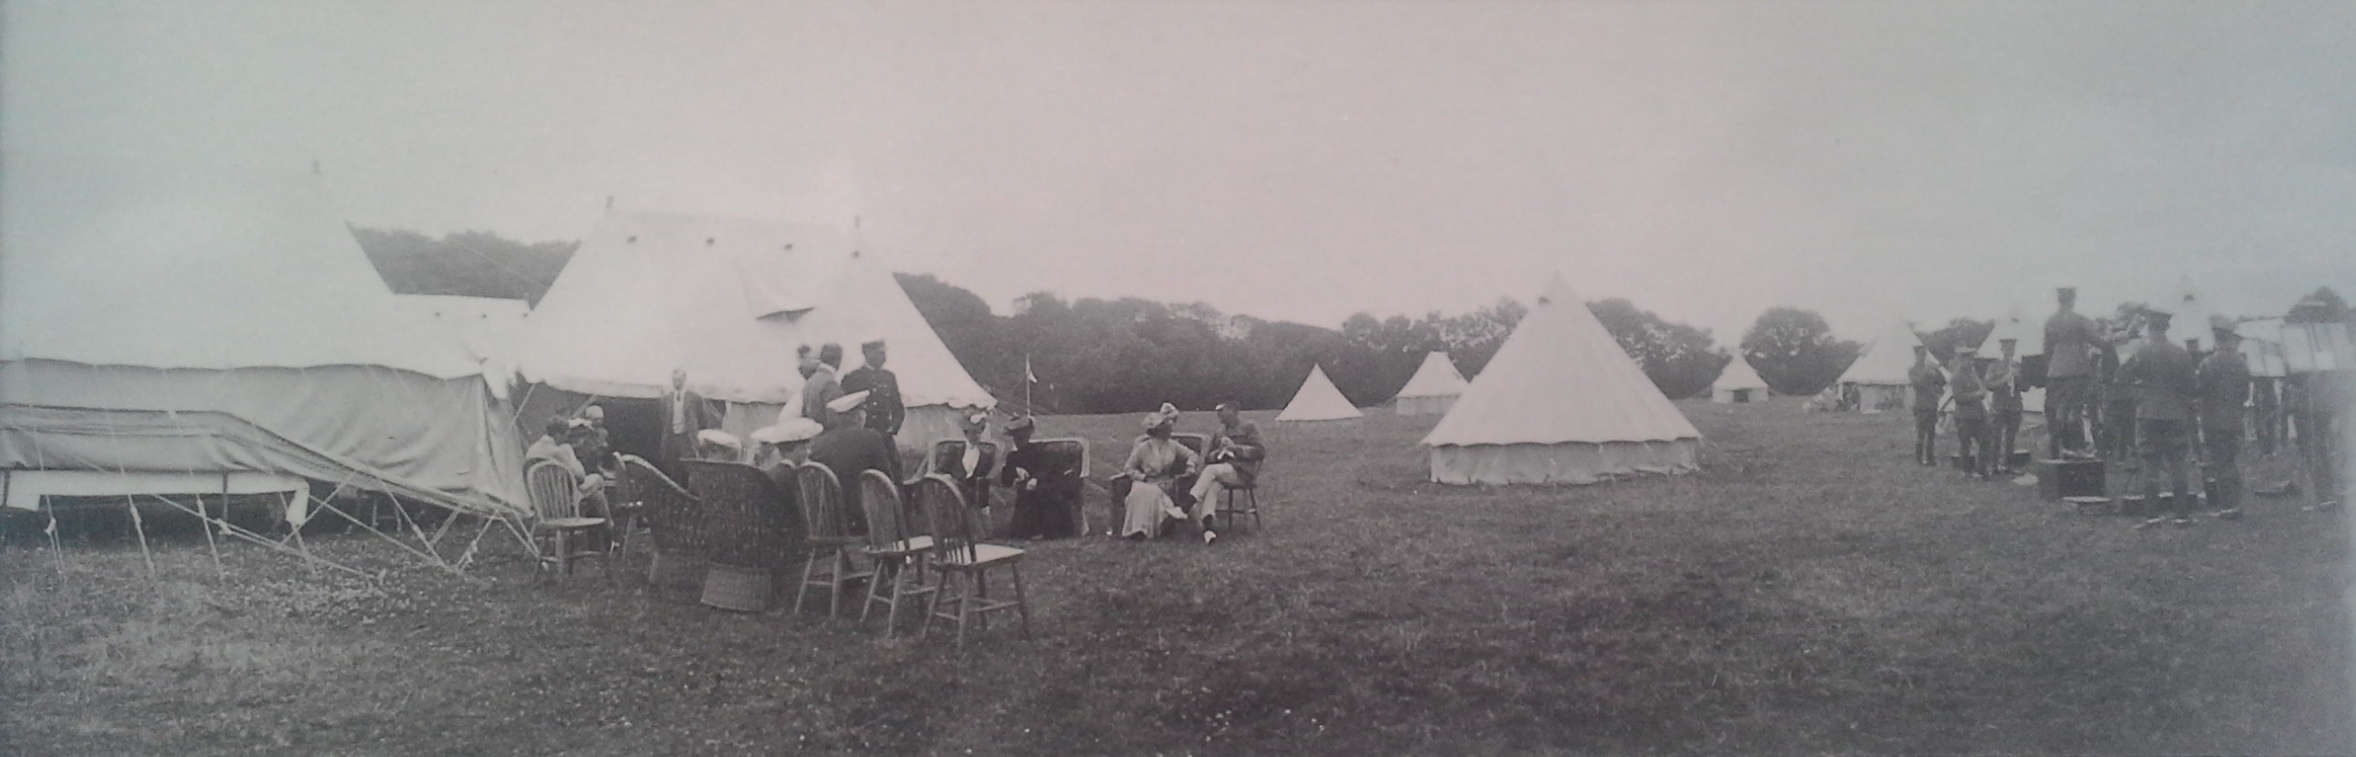 1906 Cavalry Entertainment Bannow, Bannow Historical Society Wexford